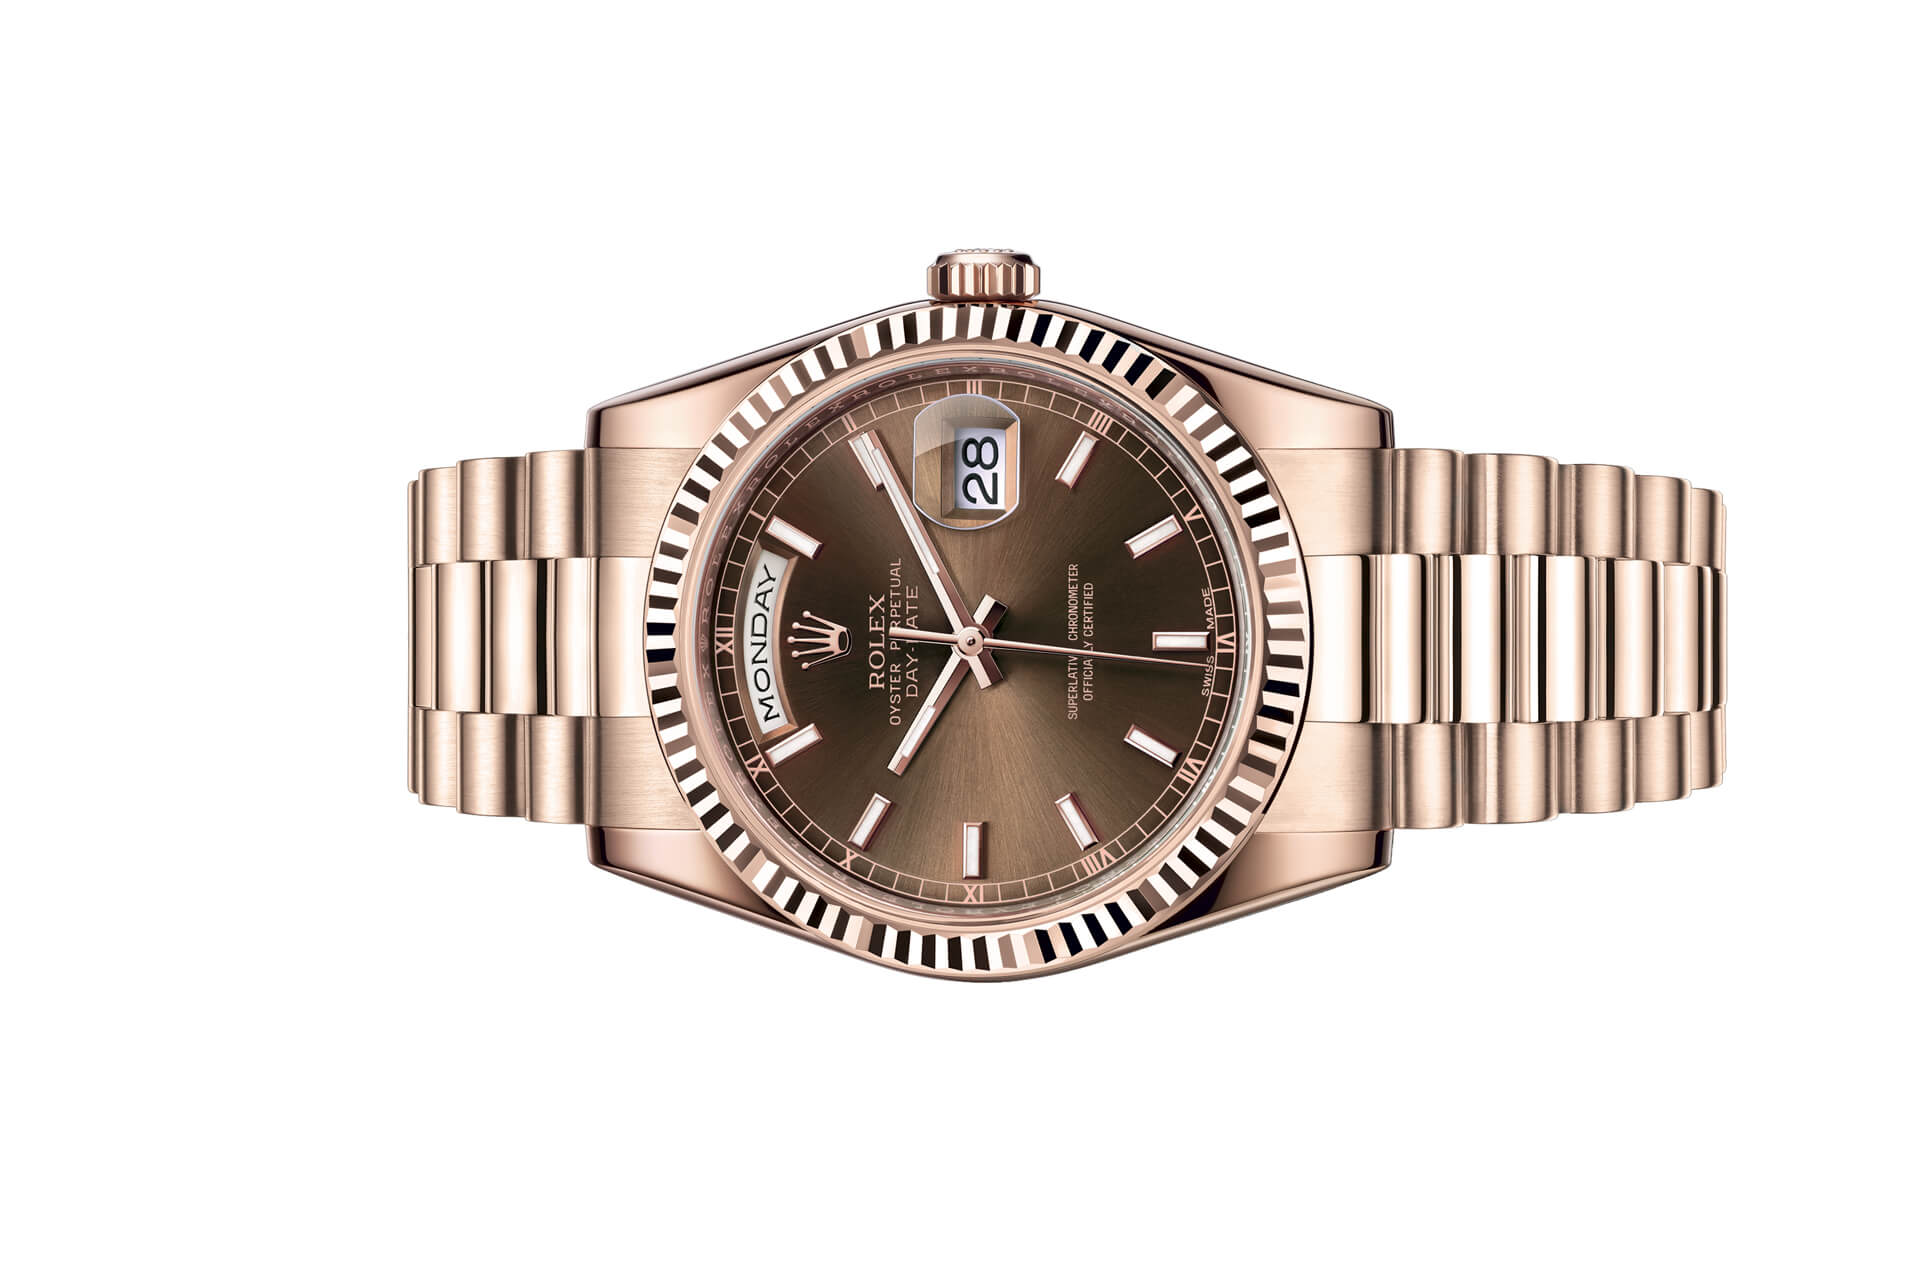 Đồng Hồ Rolex Day-Date 36 118235 Mặt Số Chocolate